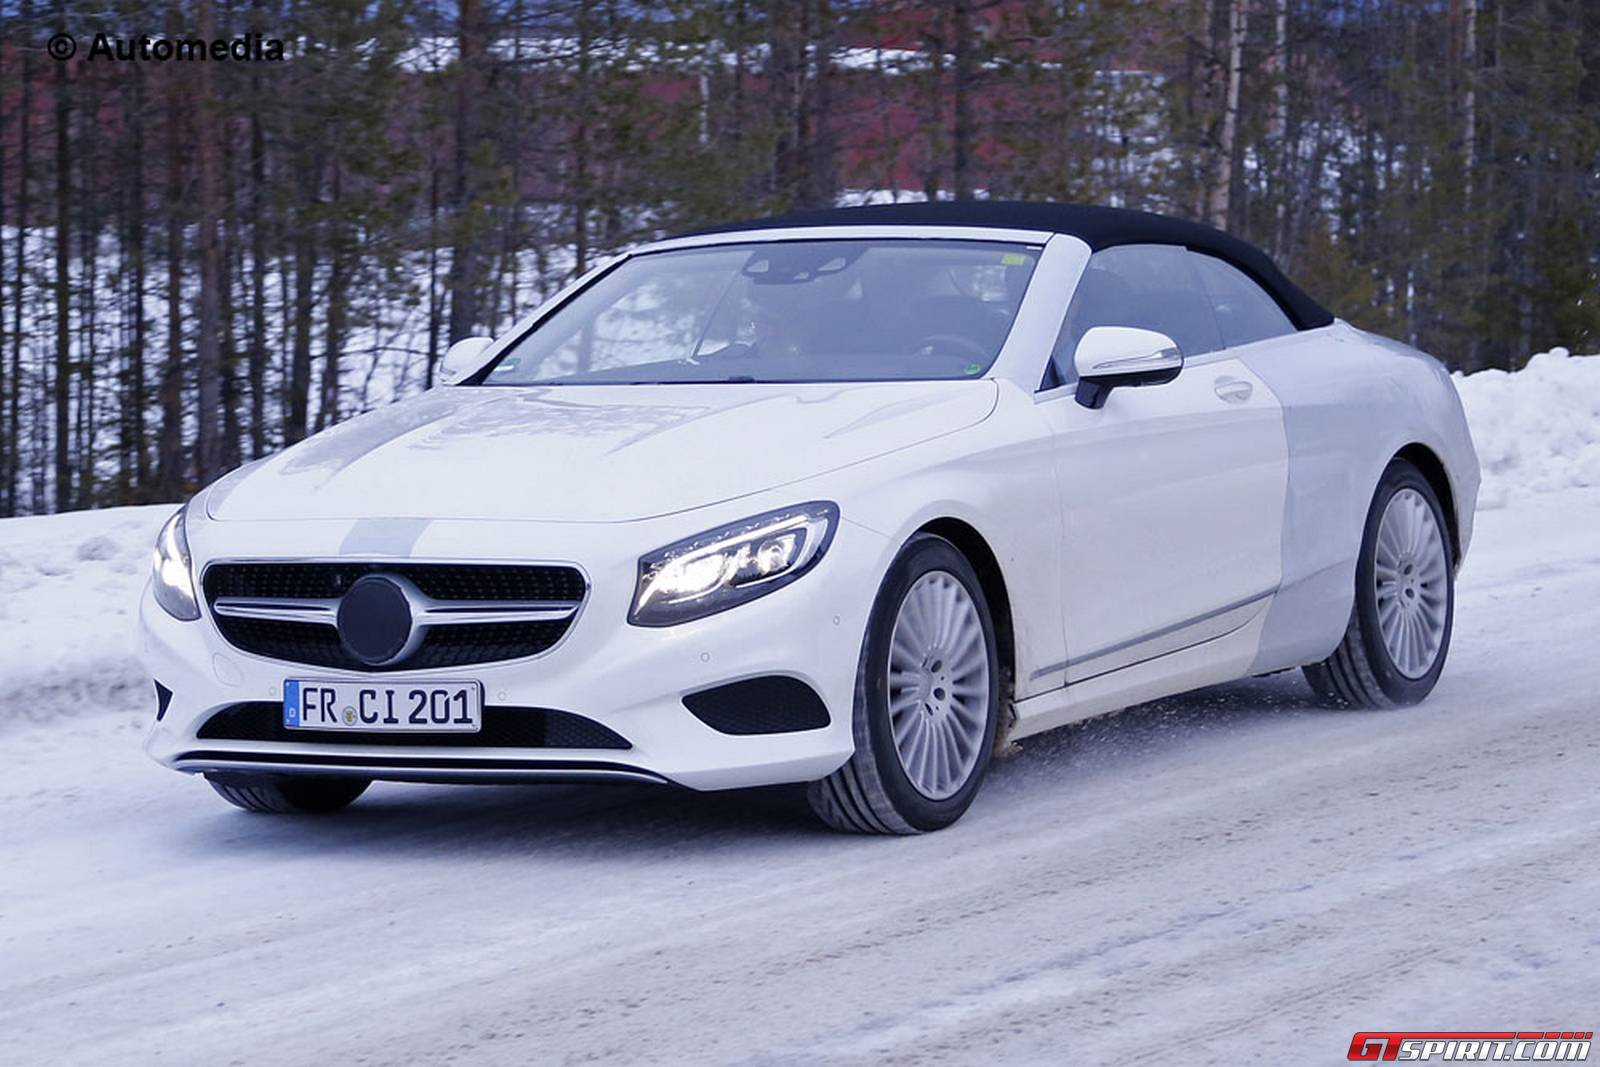 Mercedes benz s class cabriolet revealed in new spy shots for Mercedes benz s class convertible